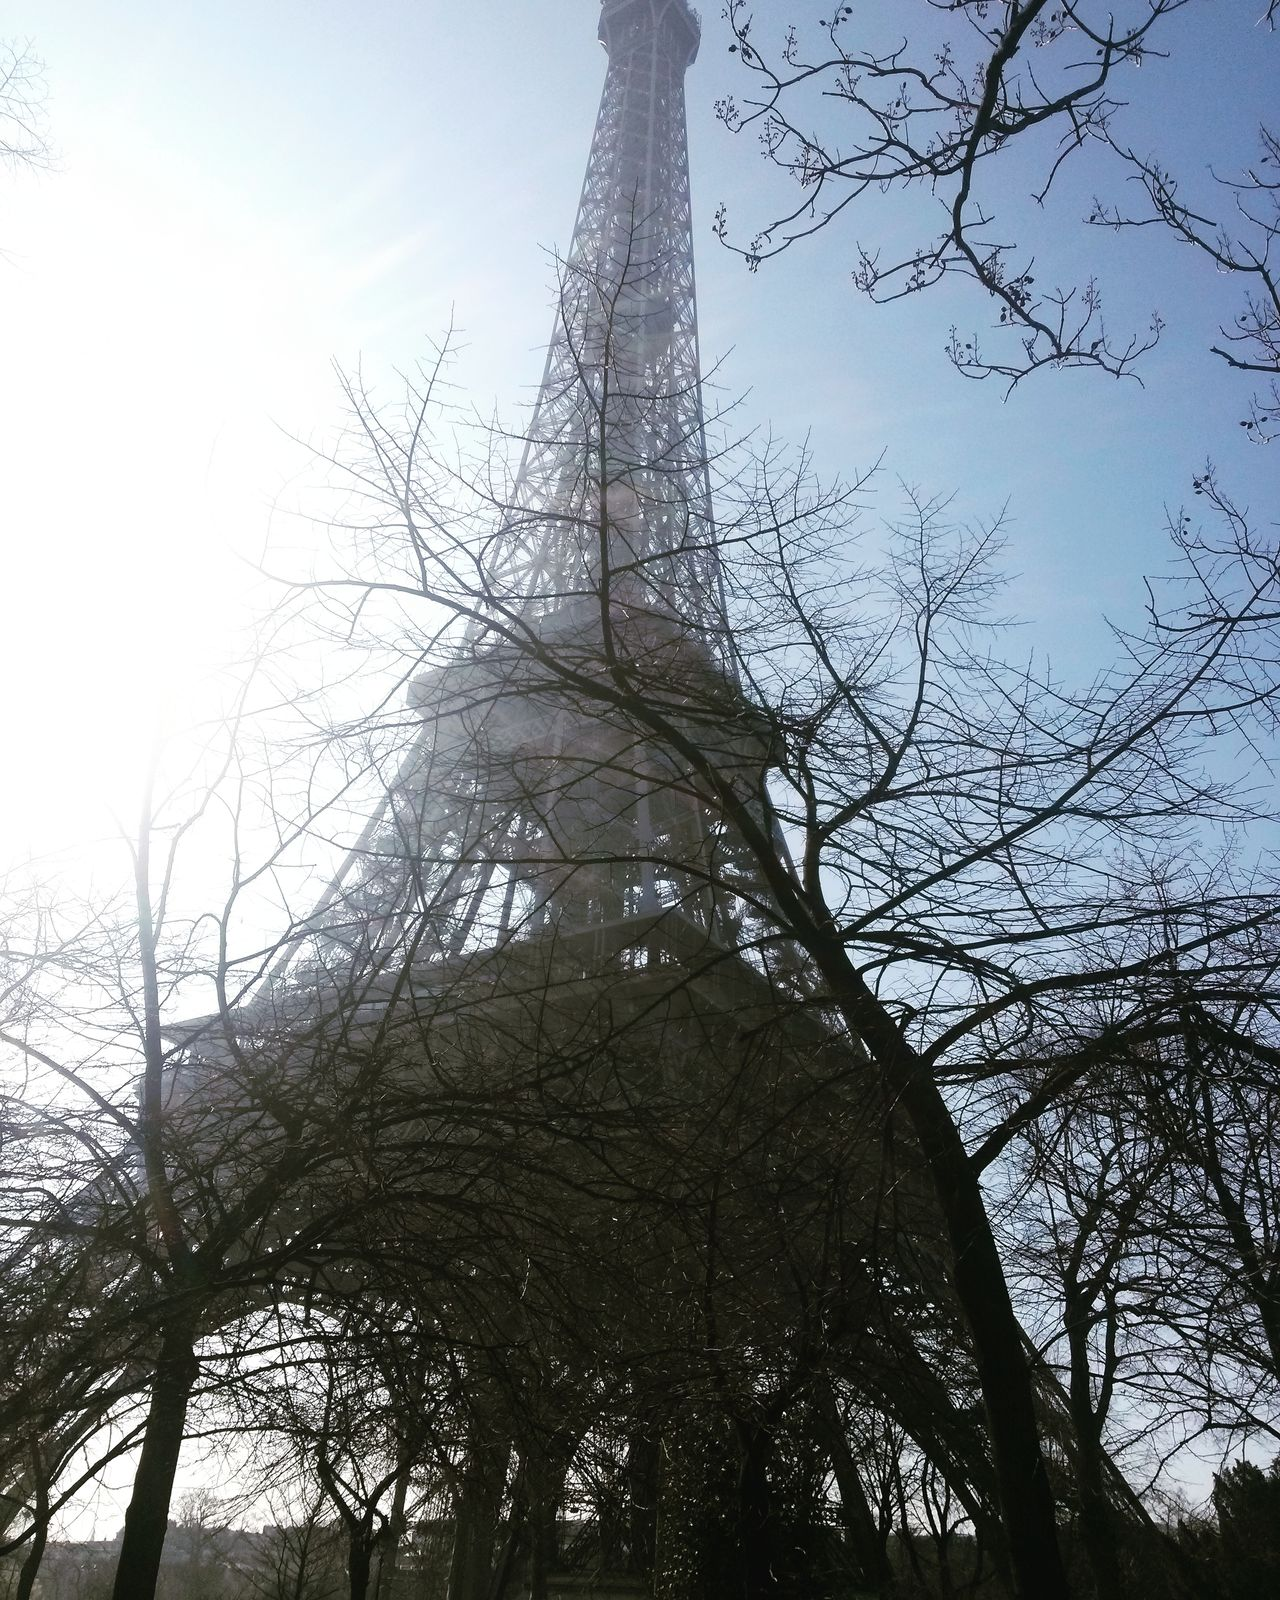 Sky France Eiffel Tower Tree Low Angle View Paris Branch Day Built Structure Outdoors Travel Destinations Cloud - Sky Building Exterior Historical Building Architecture Travel Photography Tourist Attraction  Tourism Travel Art Tourist Attraction  Winter Wintertime Winter Trees